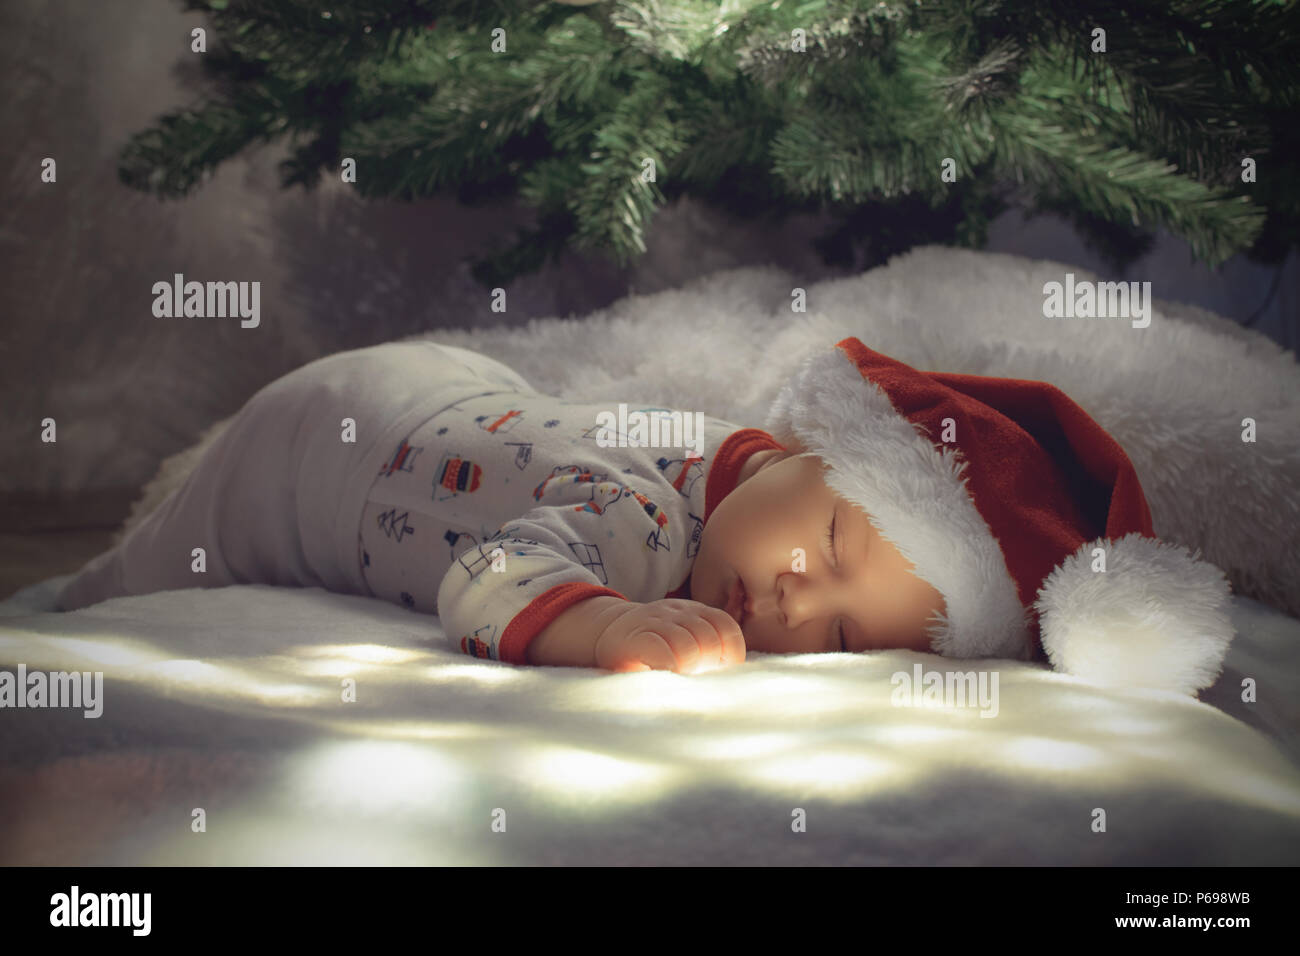 Newborn Christmas Pictures.Newborn Baby Boy Sleep Under Christmas Tree On White